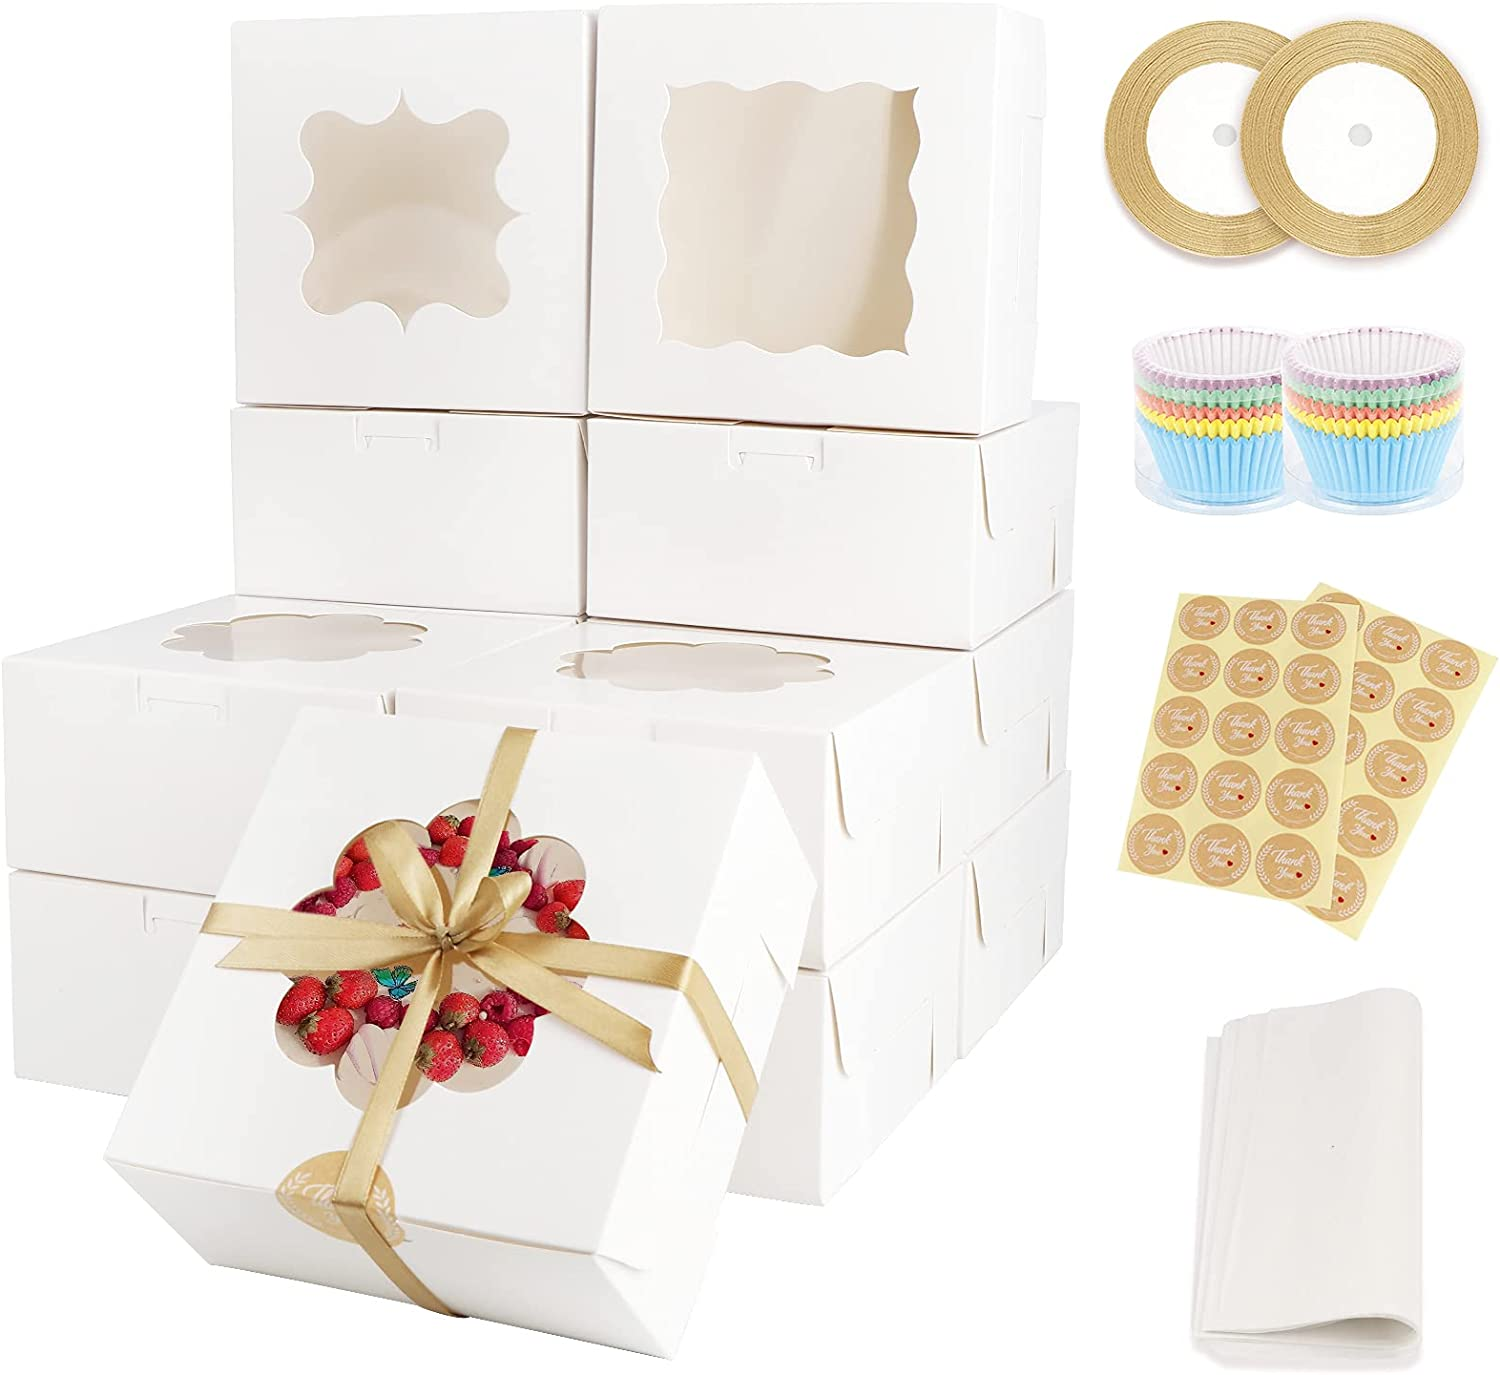 OurWarm 24Pcs White Bakery Boxes with Window, 6x 6x 3 Inches Paperboard Treat Boxes,Cookie Boxes for Pastry, Cupcakes, Strawberries,Includes 200Pcs Cupcake Liners, 30Pcs Stickers and Ribbons